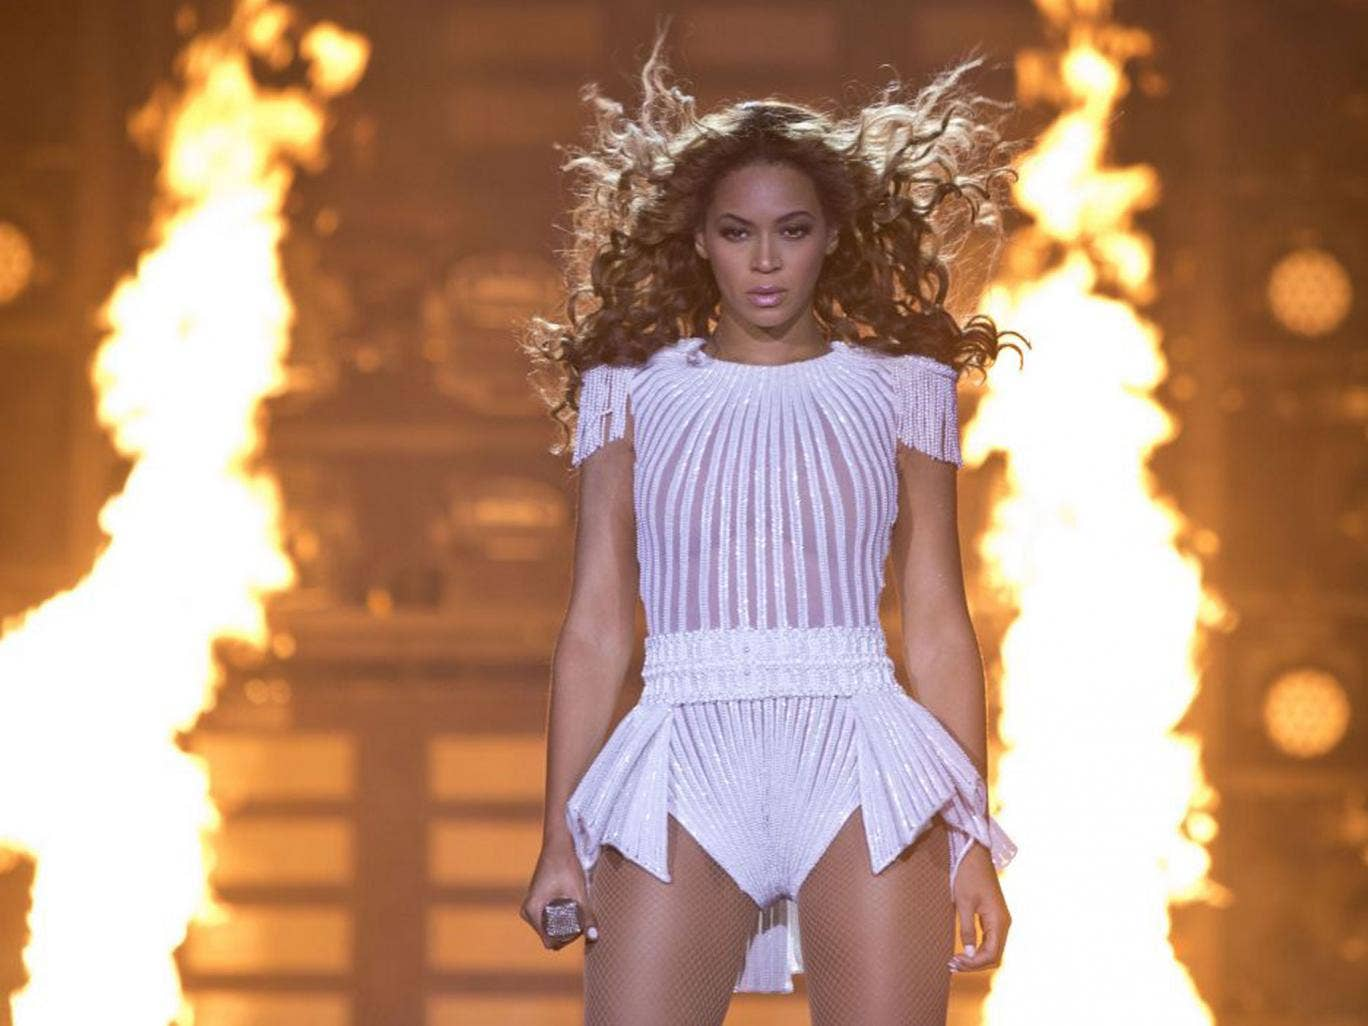 Flames, check. Wind machine, check. Beyoncé pulls out all of the theatrical stops on this tour